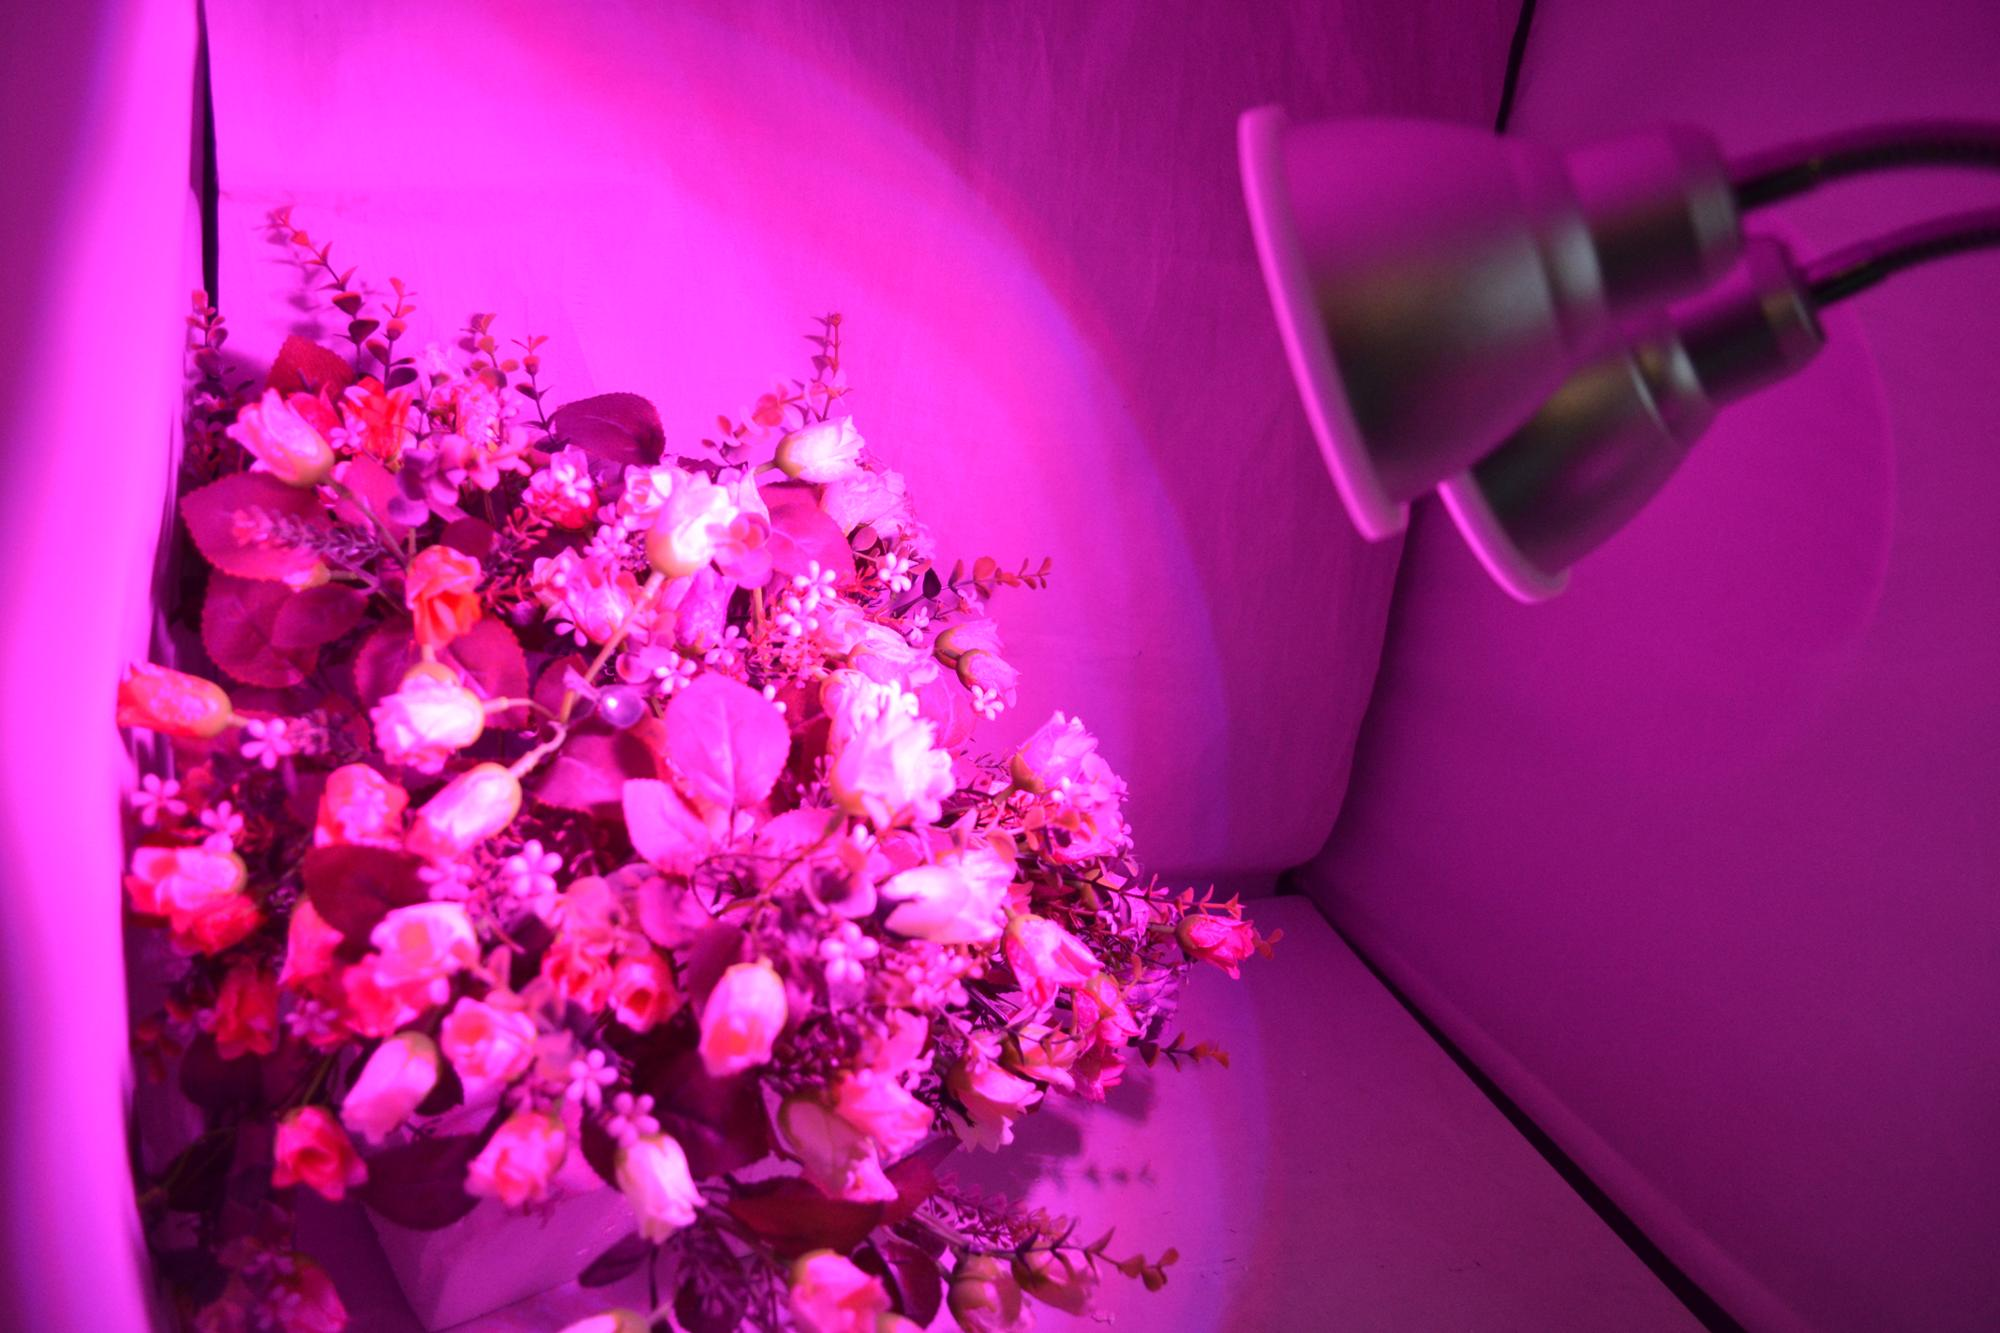 Dual Head 24w Timing Cilp LED Grow Light for Indoor and OuTdoor Plant Hydroponic LED Plant Light Grow